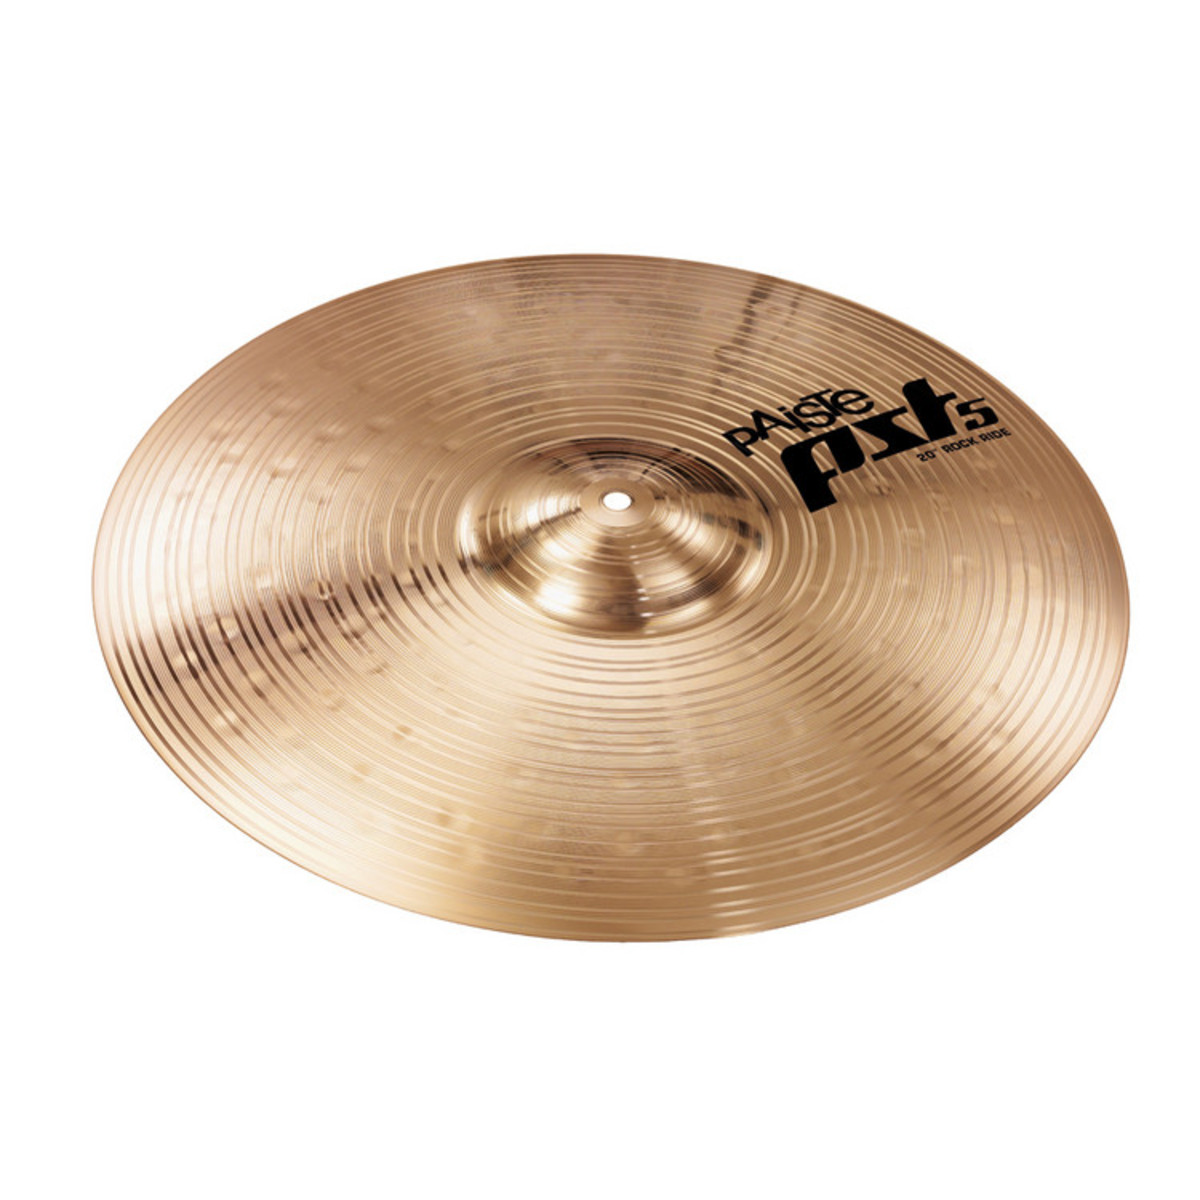 paiste pst 5 n 20 39 39 rock ride cymbal at gear4music. Black Bedroom Furniture Sets. Home Design Ideas